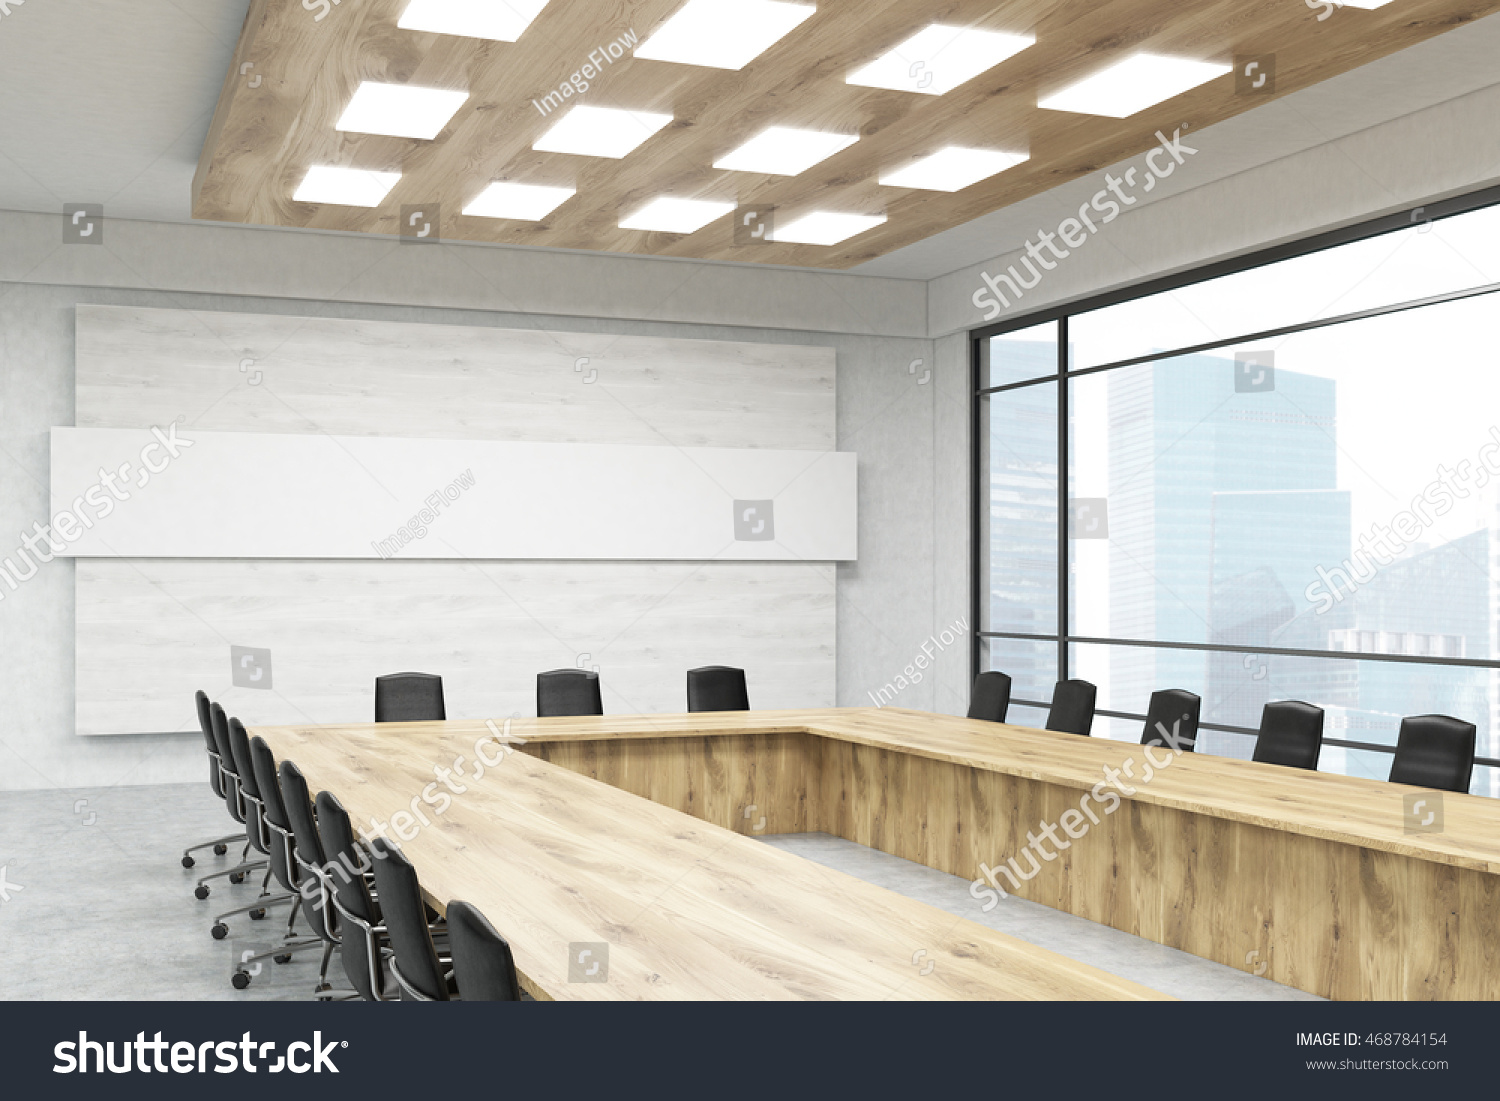 Office Room Interior With Long Table Chairs Poster Windows And City View